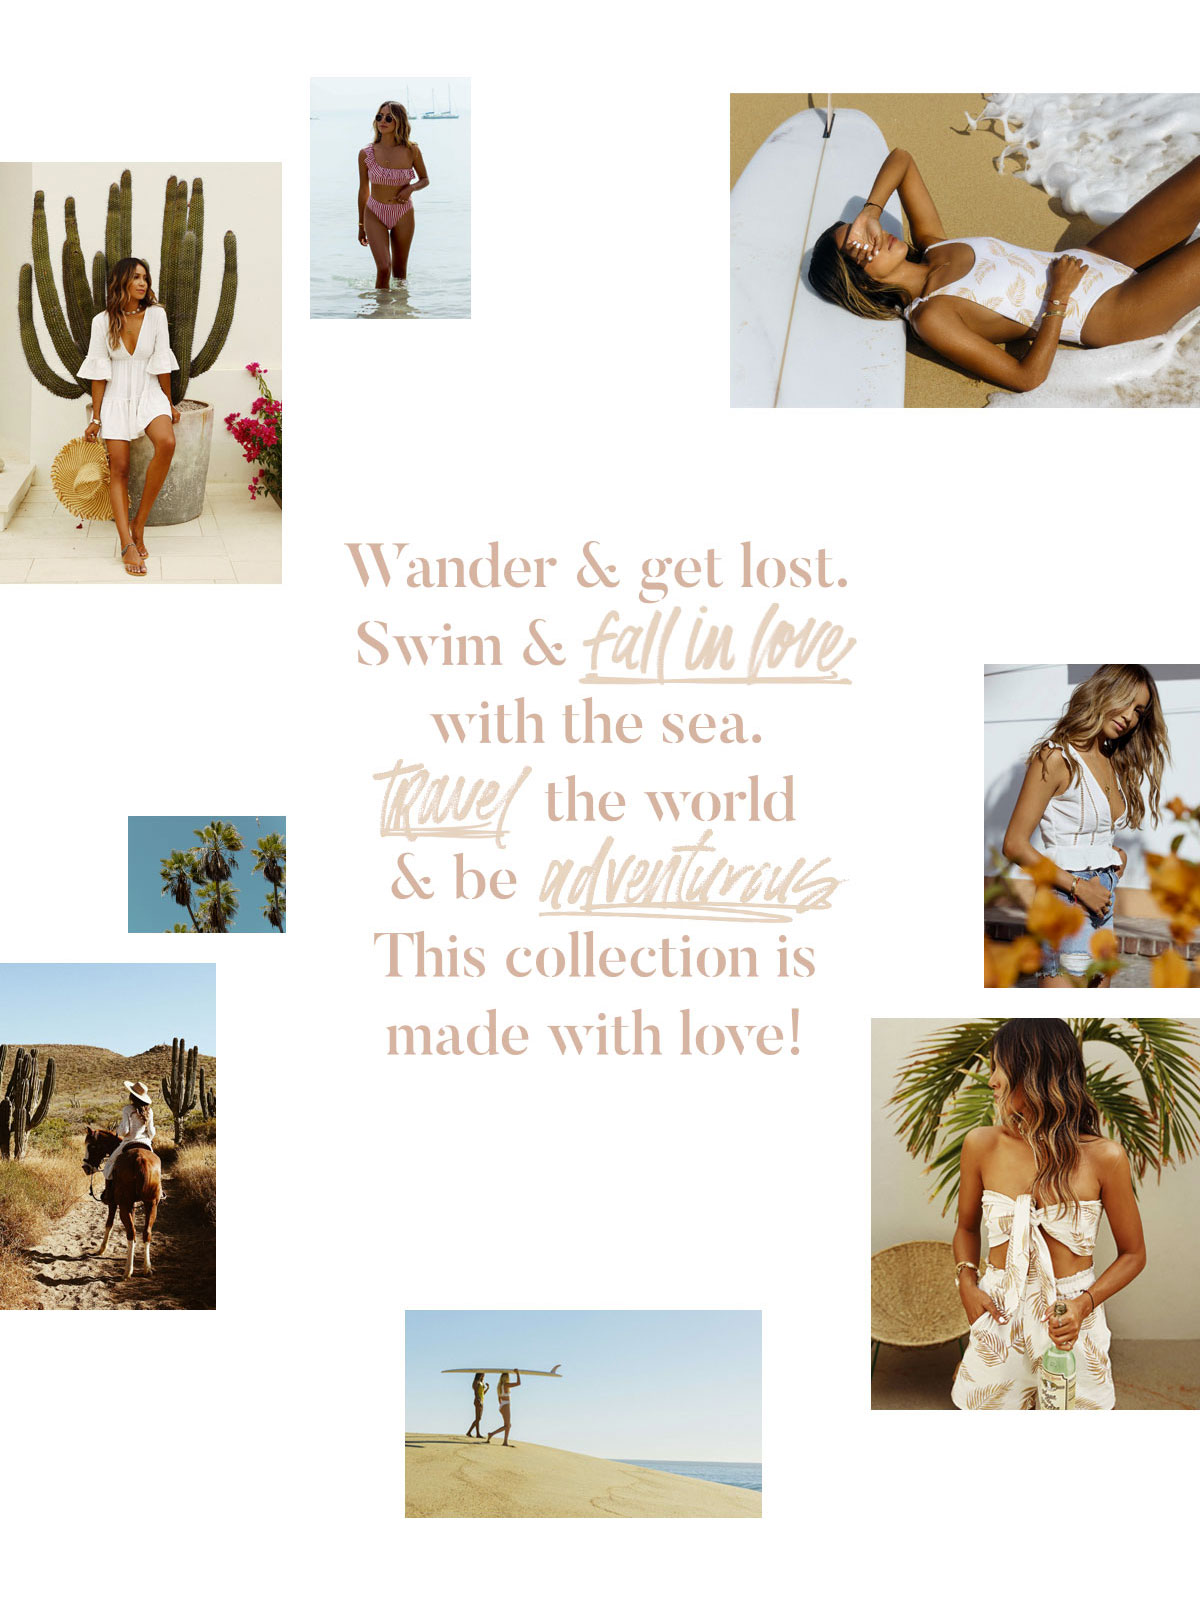 billabong women,billabong women's europe,sincerely jules,blogueuse,collab,mode,fashion,beachwear,maillots de bains,mexique,shooting,